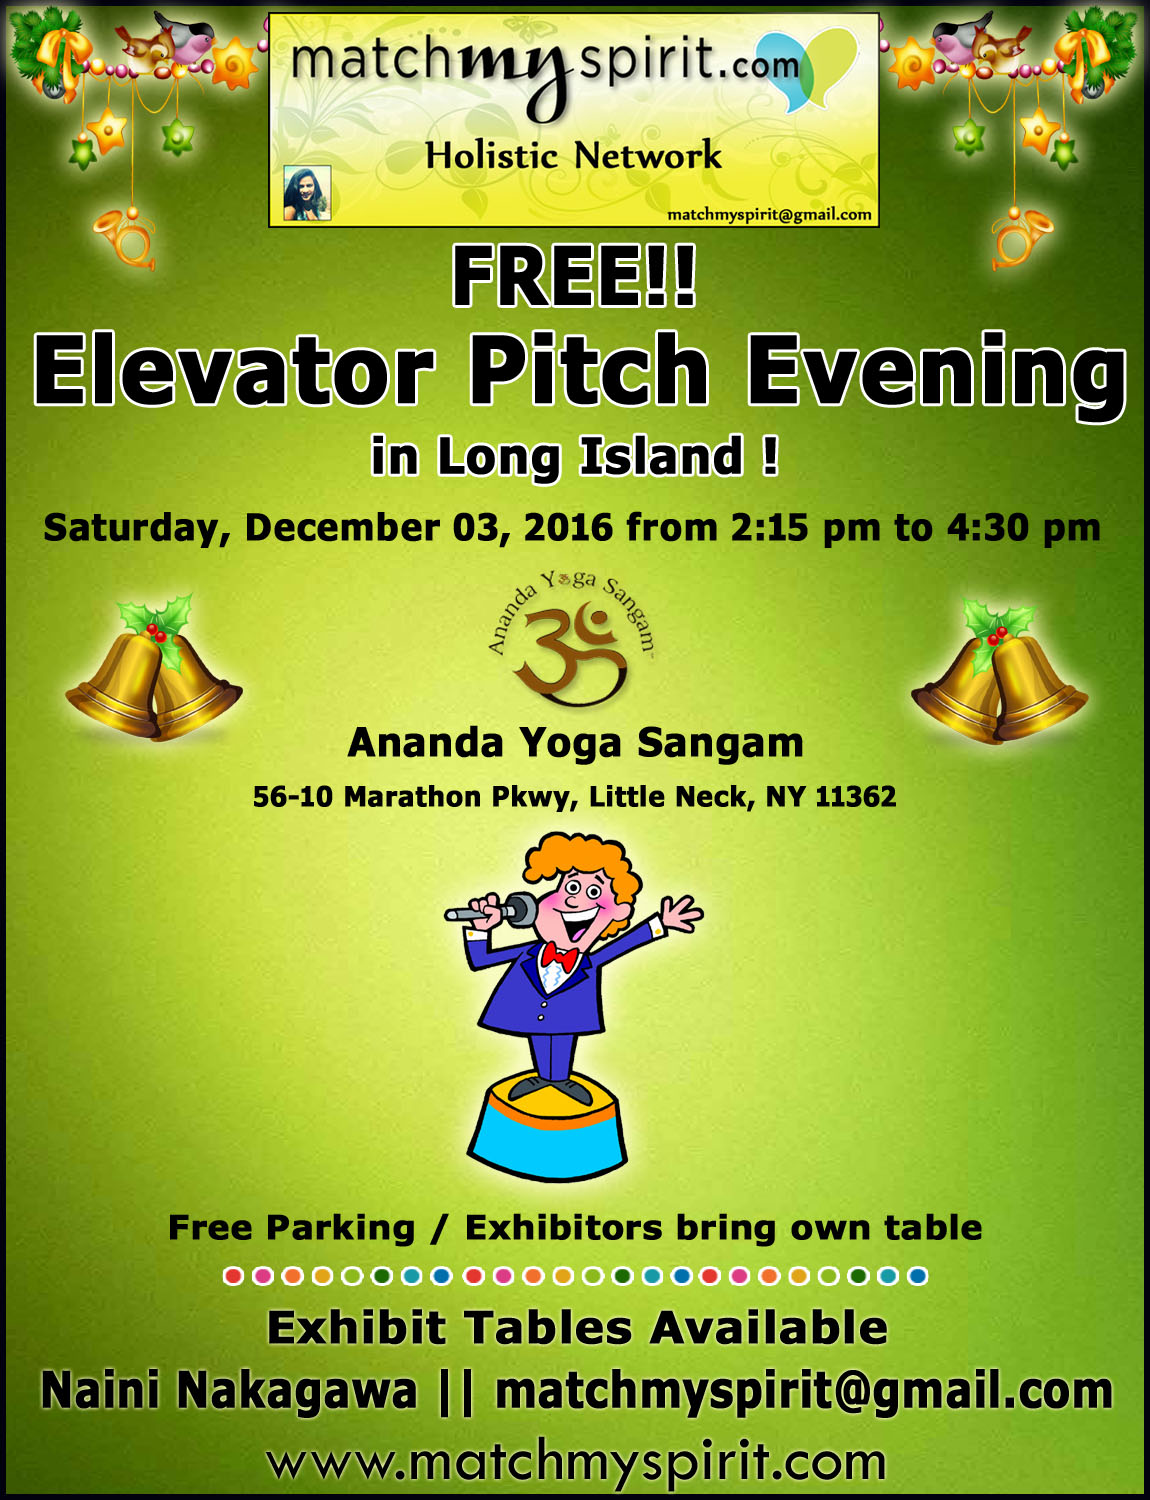 FREE!! Elevator Pitch Evening in Long Island